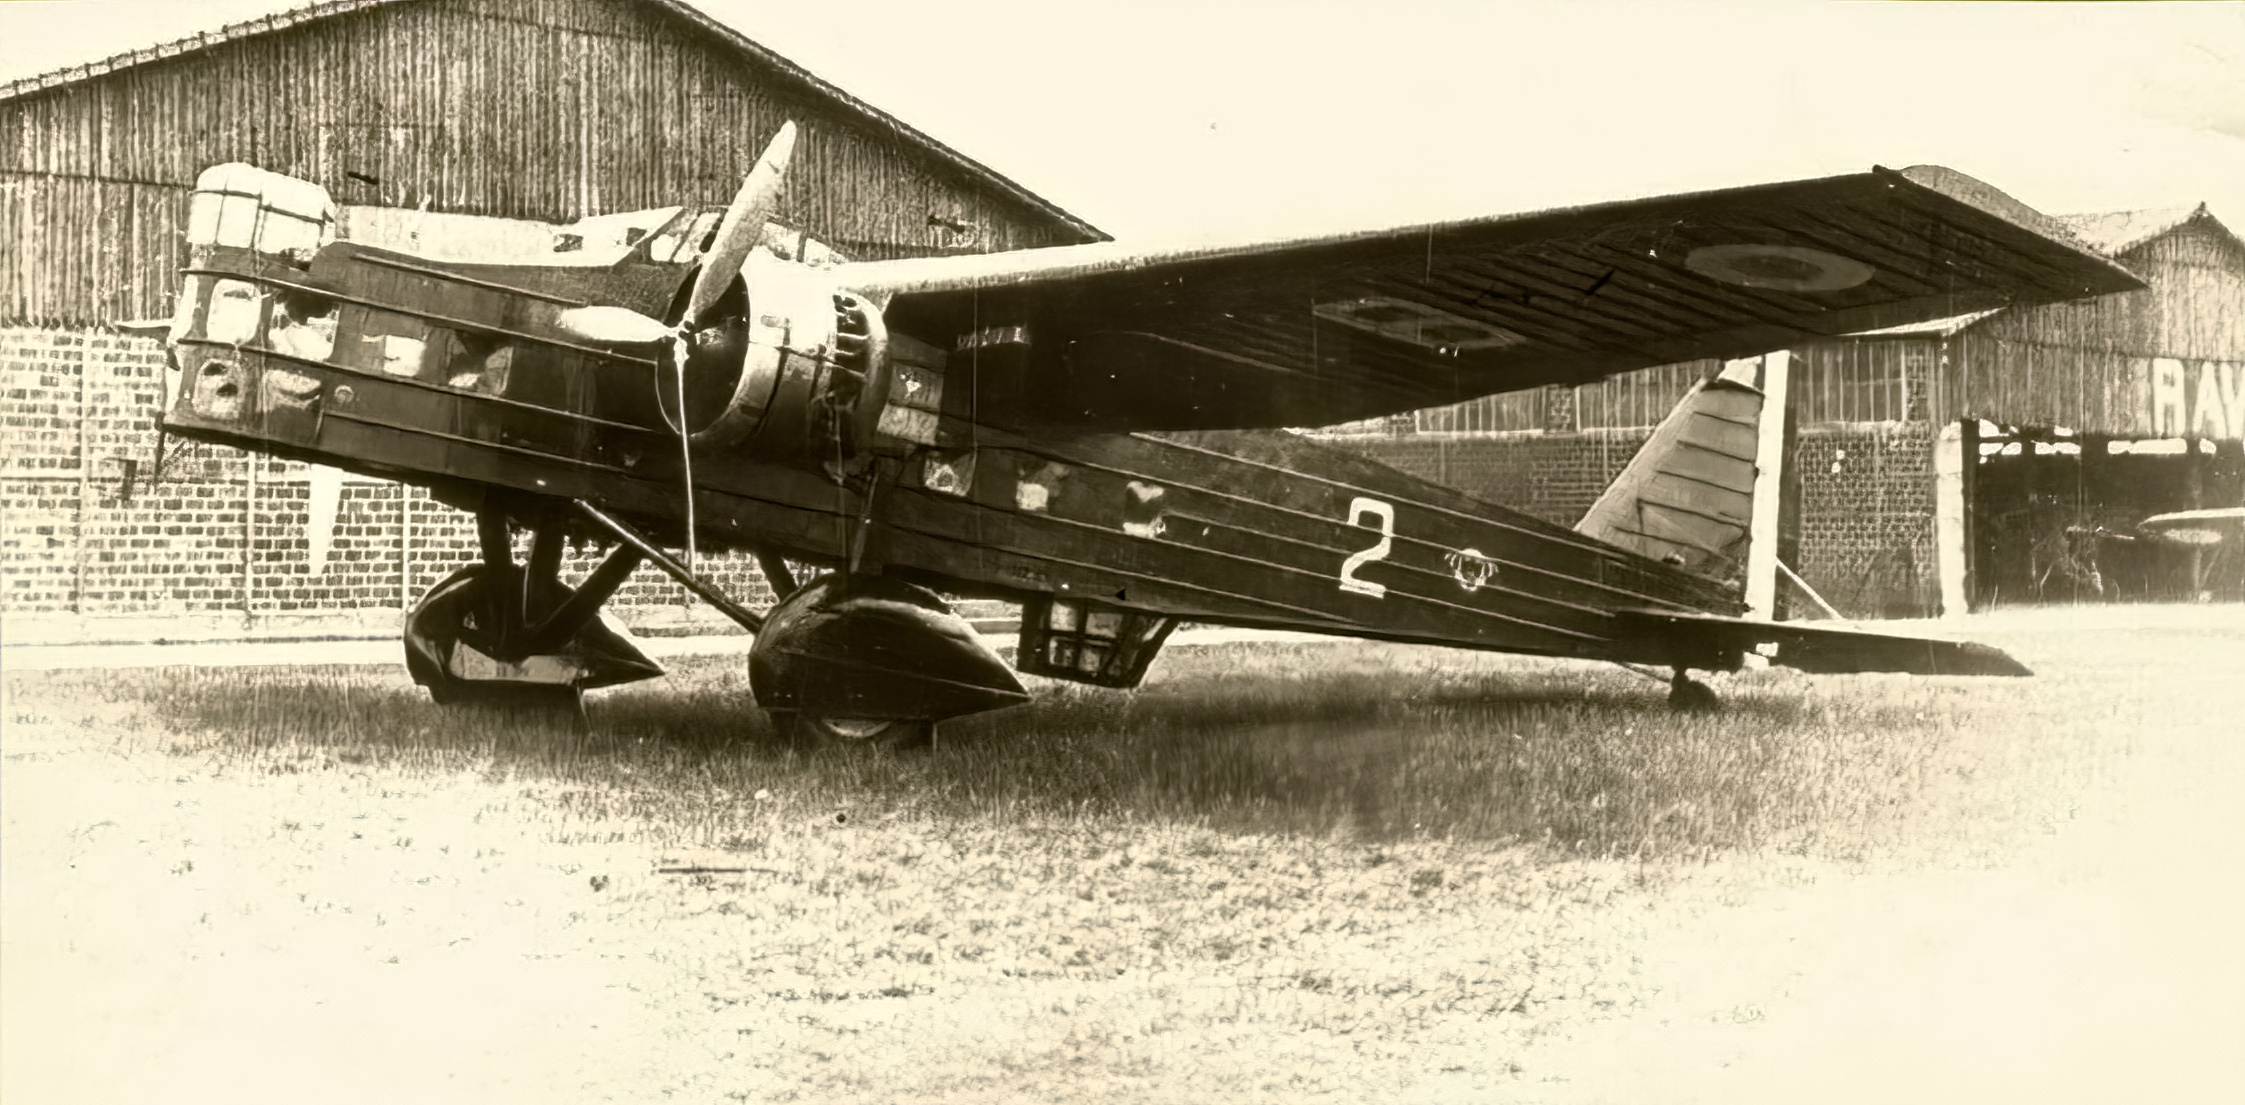 French Airforce Bloch MB 200 based in France pre war 1940 ebay 02